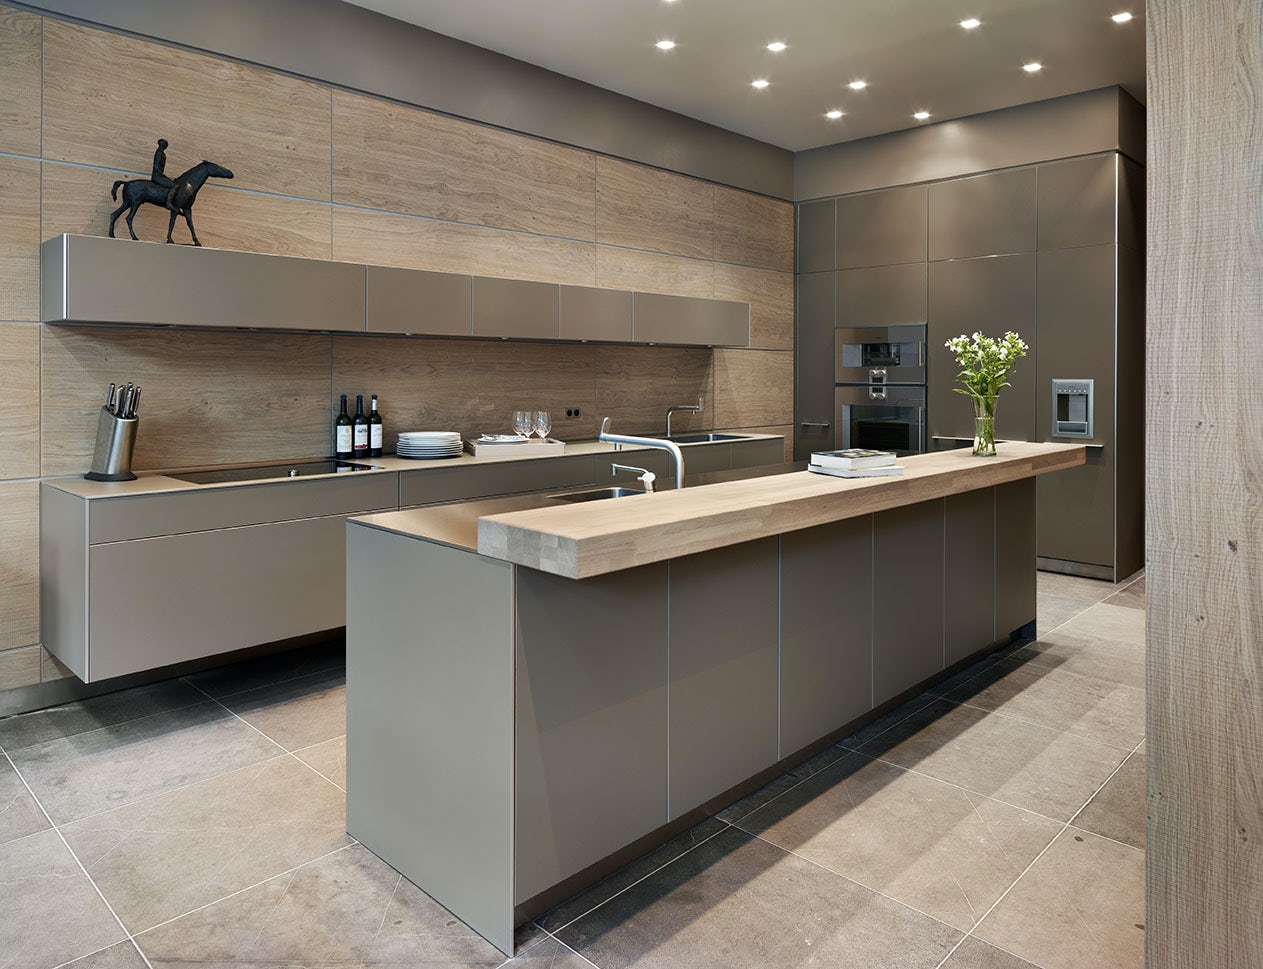 kitchen cabinets dc grand dining kitchen architecture s bulthaup b3 architizer 2956